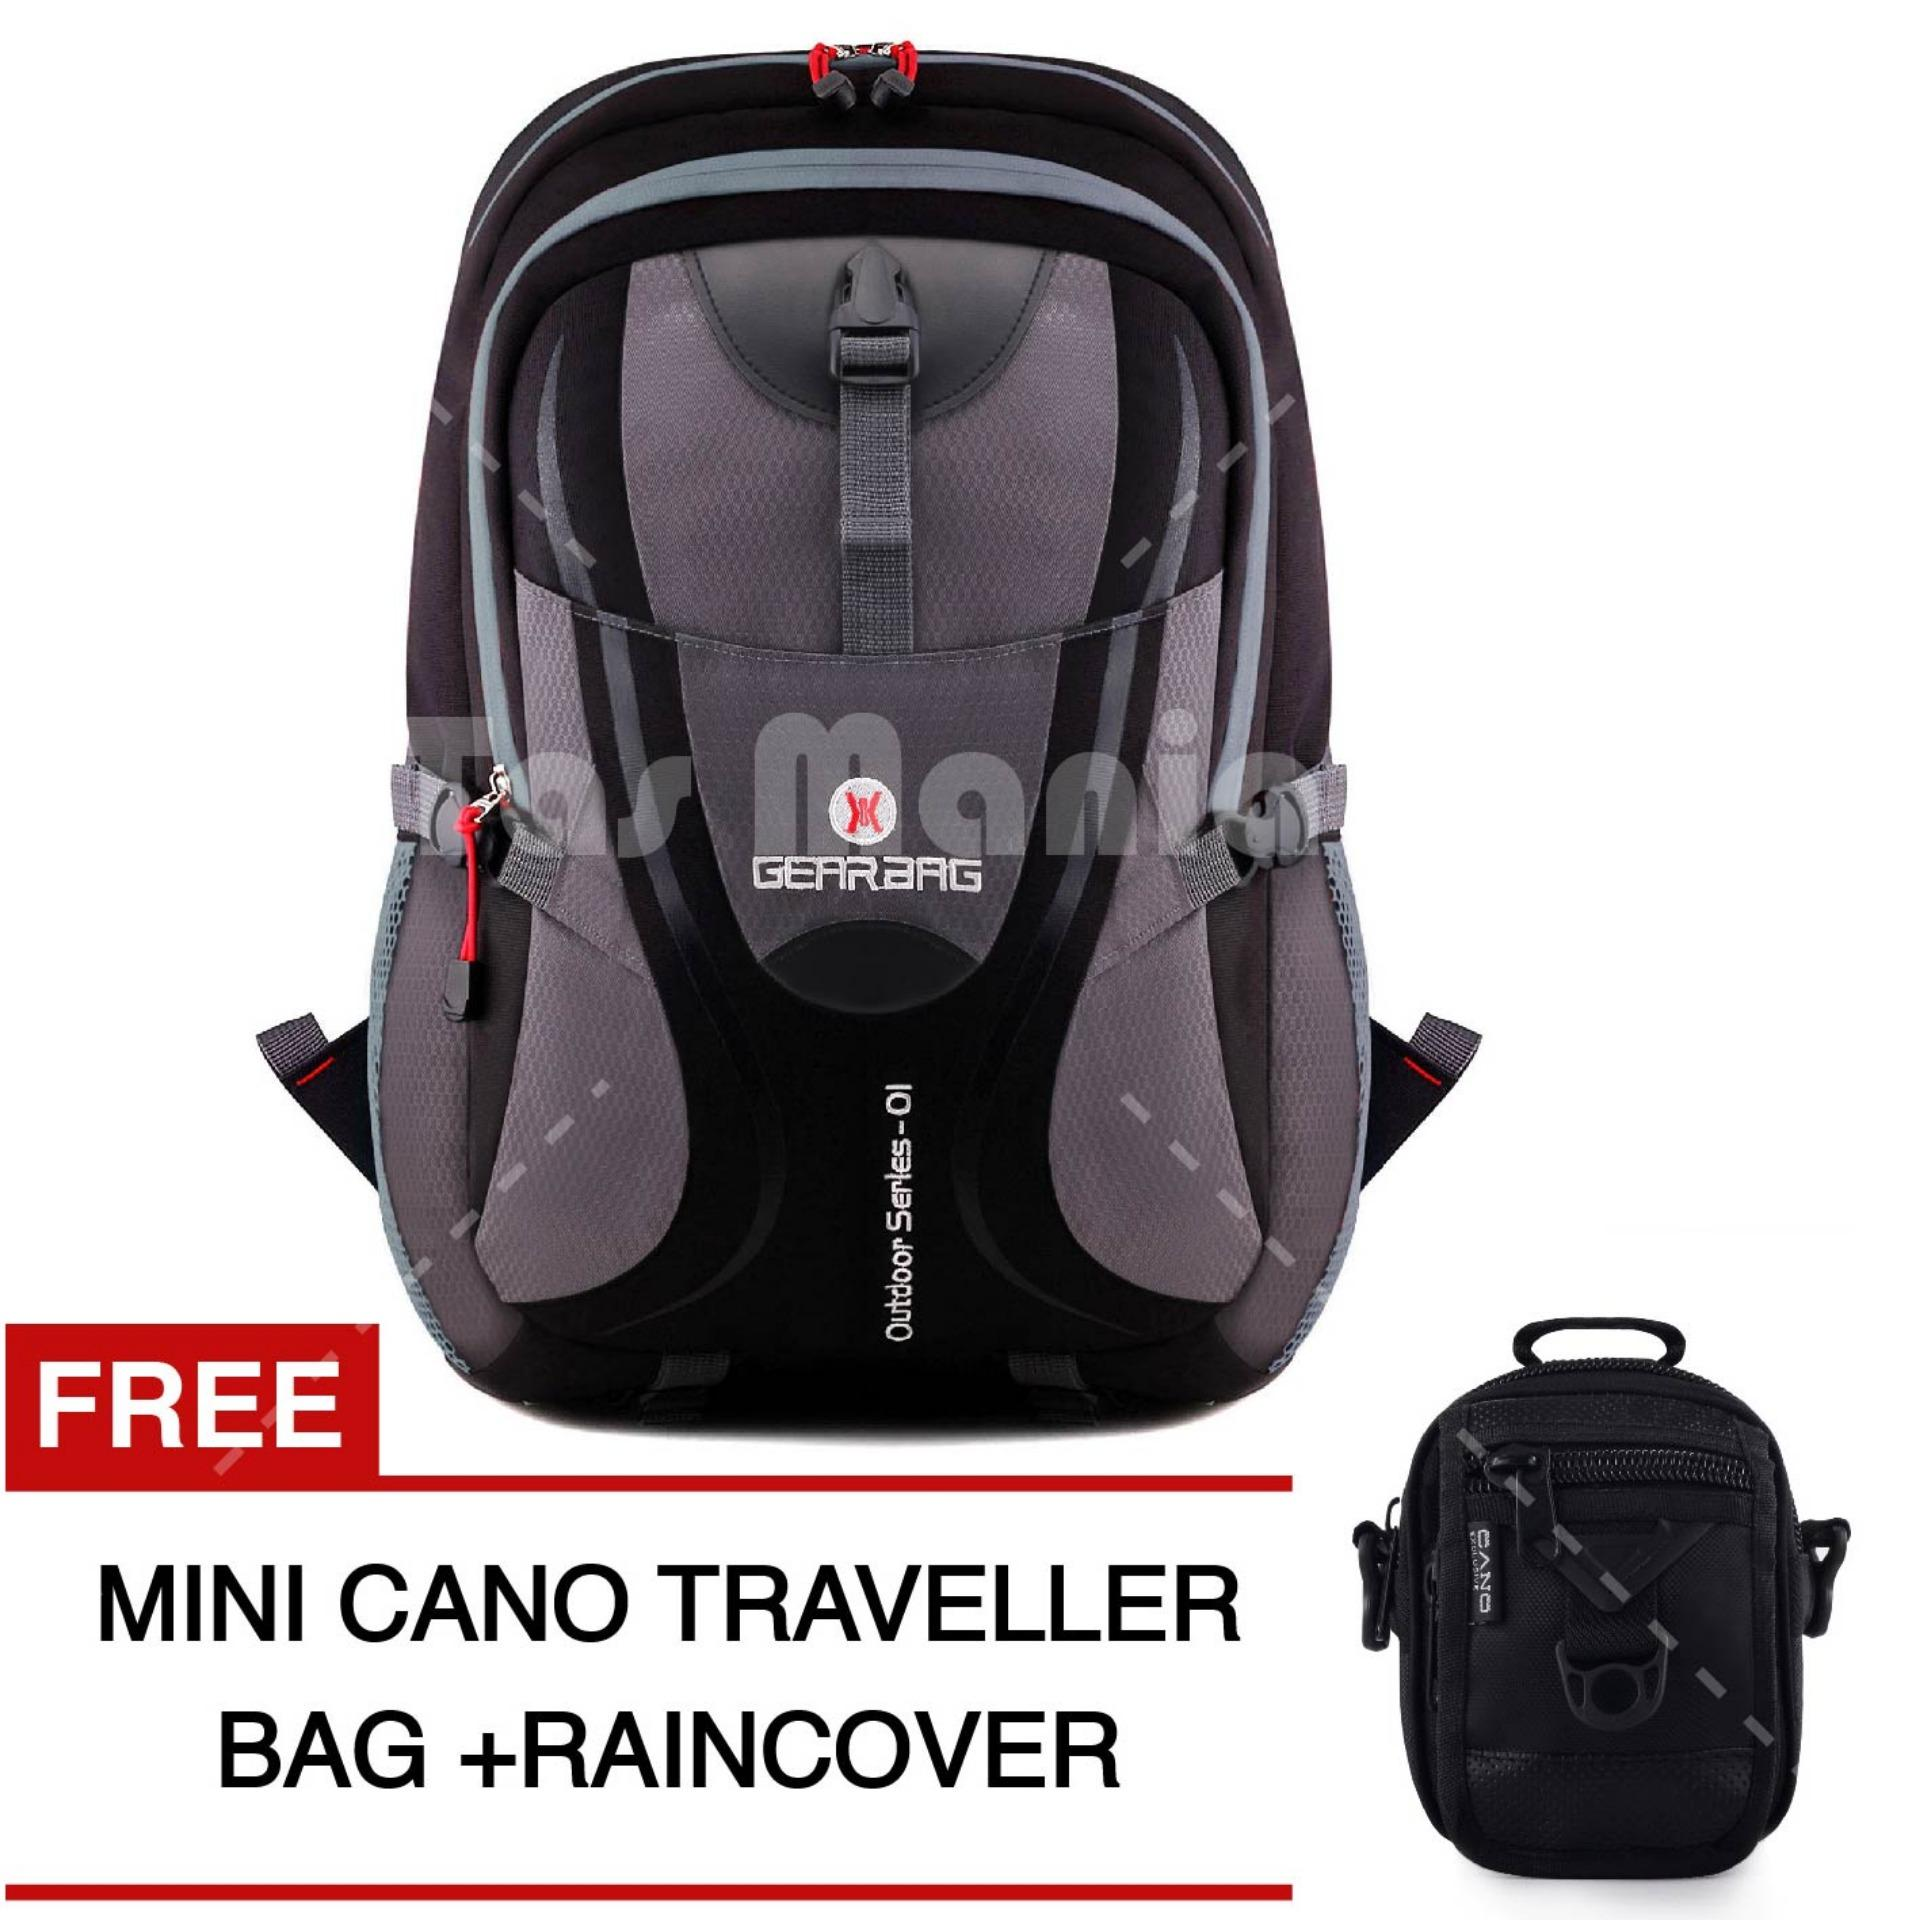 Tas Ransel Pria Gear Bag - Scorpion X87 Tas Laptop Backpack - Black Grey + Raincover + FREE Tas Selempang Mini Cano Traveller  - Black Promo Diskon Murah Tas Kerja Kantor Kuliah Anti Air Eiger Rei Consina North Face Deuter Termurah Terlaris Best Seller